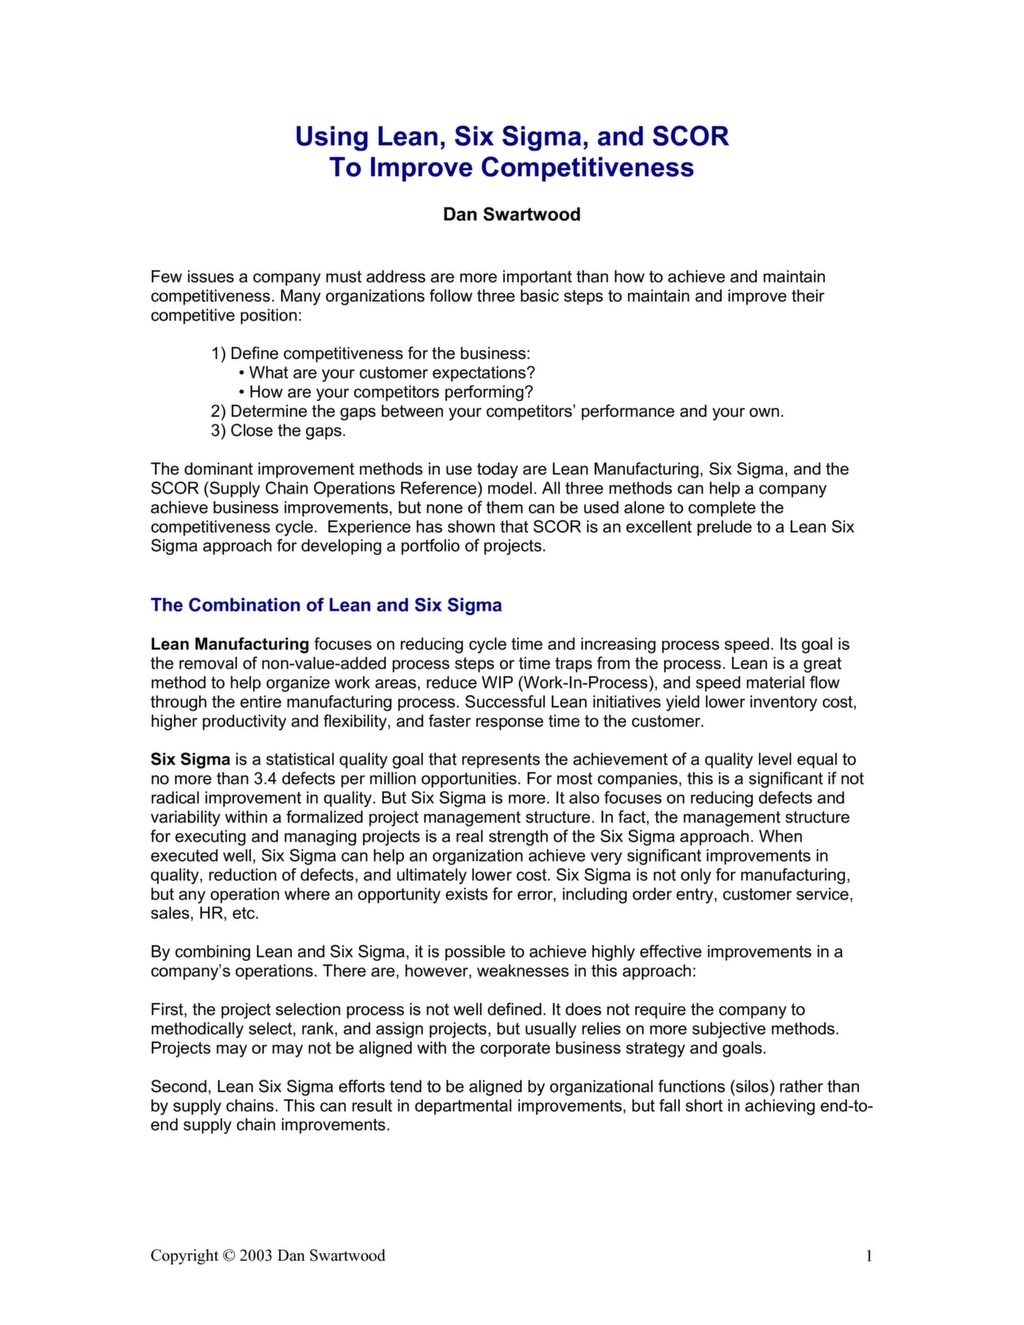 Using Lean, Six Sigma, and SCOR to Improve Competitiveness